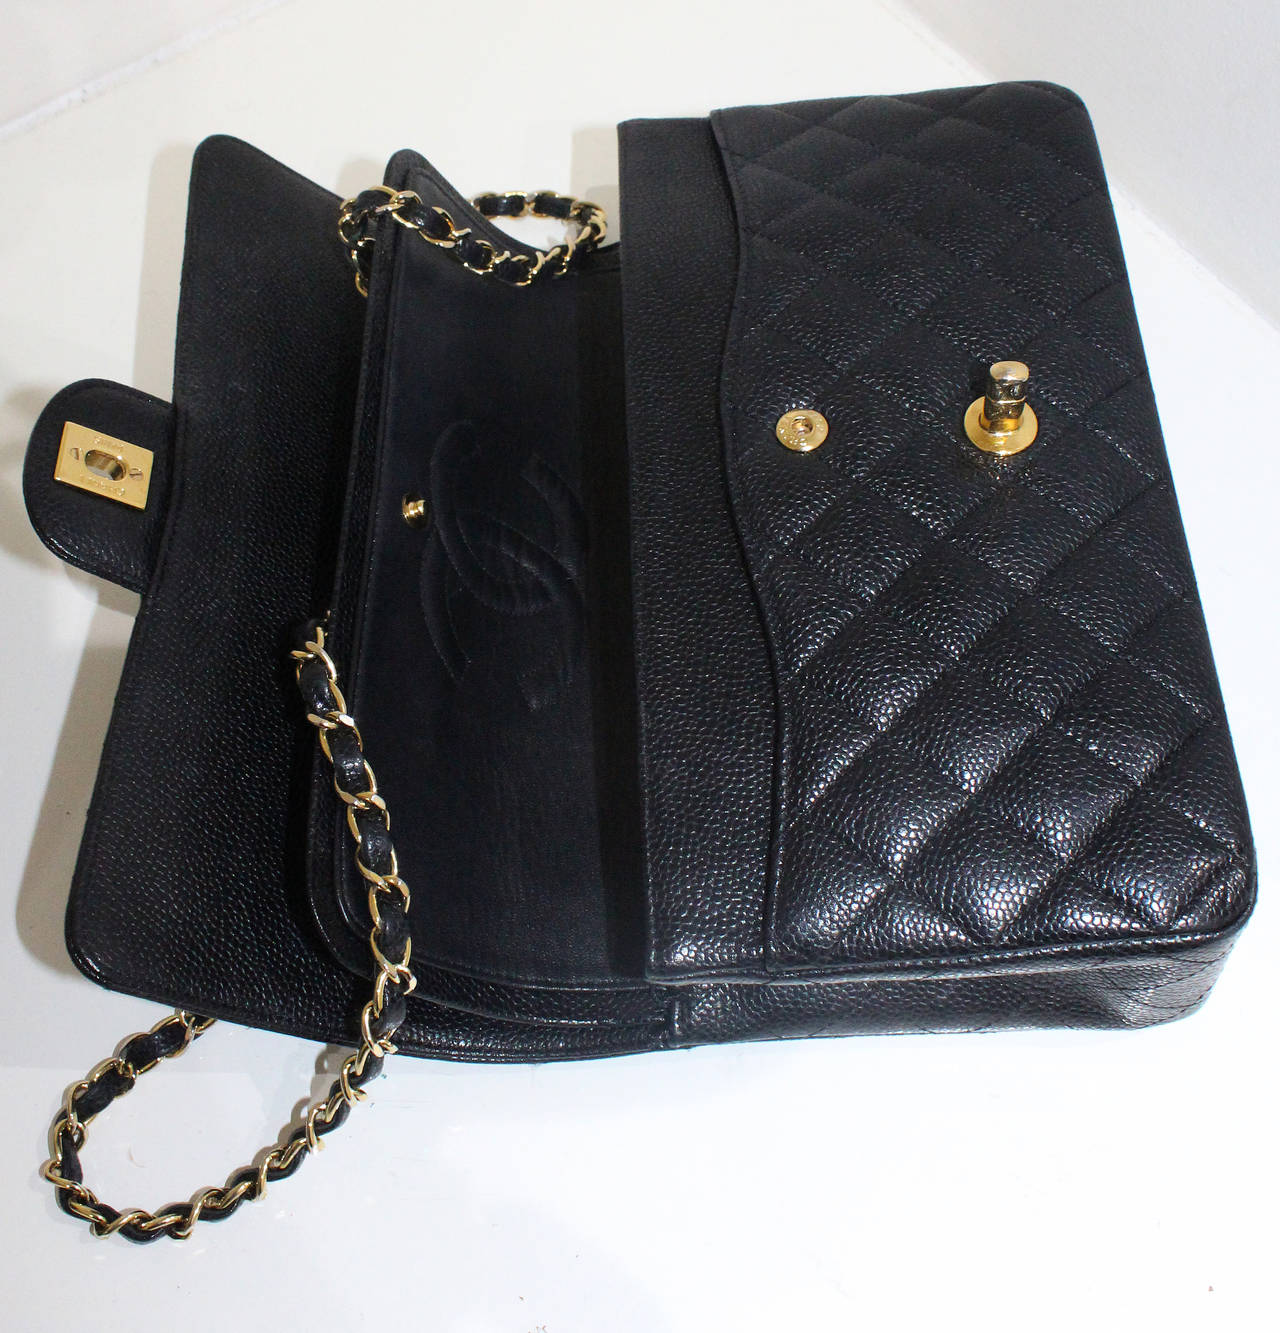 Chanel Black Quilted Caviar Classic Medium Double Flap Bag, Excellent Condition 4